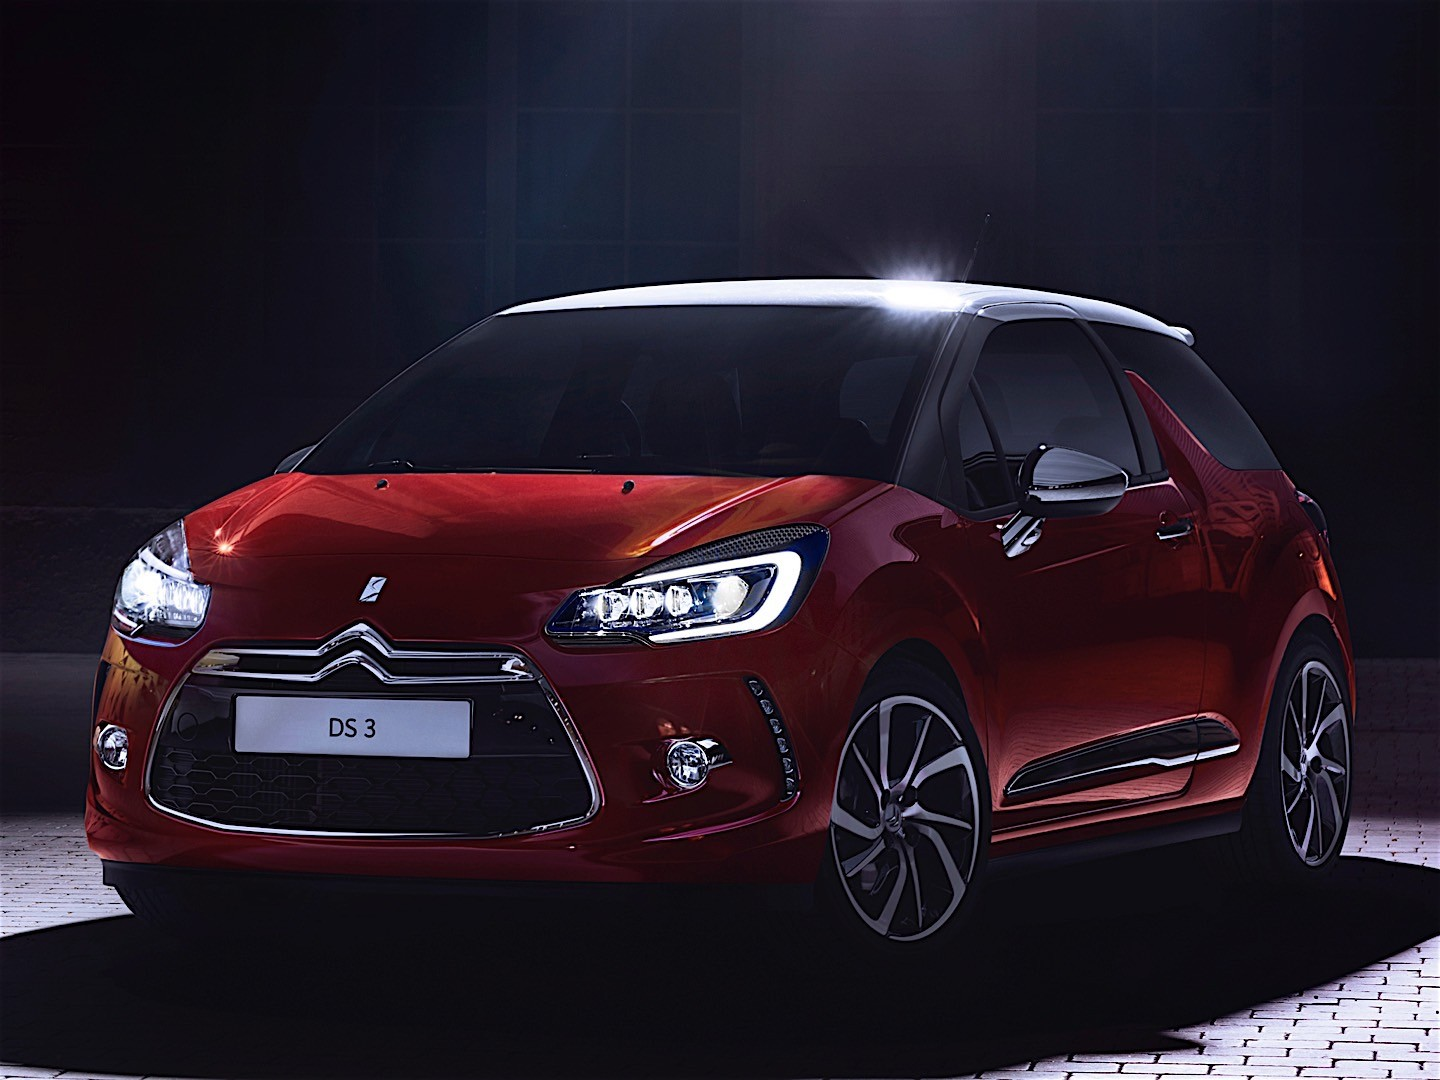 ds automobiles ds3 specs 2014 2015 2016 autoevolution. Black Bedroom Furniture Sets. Home Design Ideas